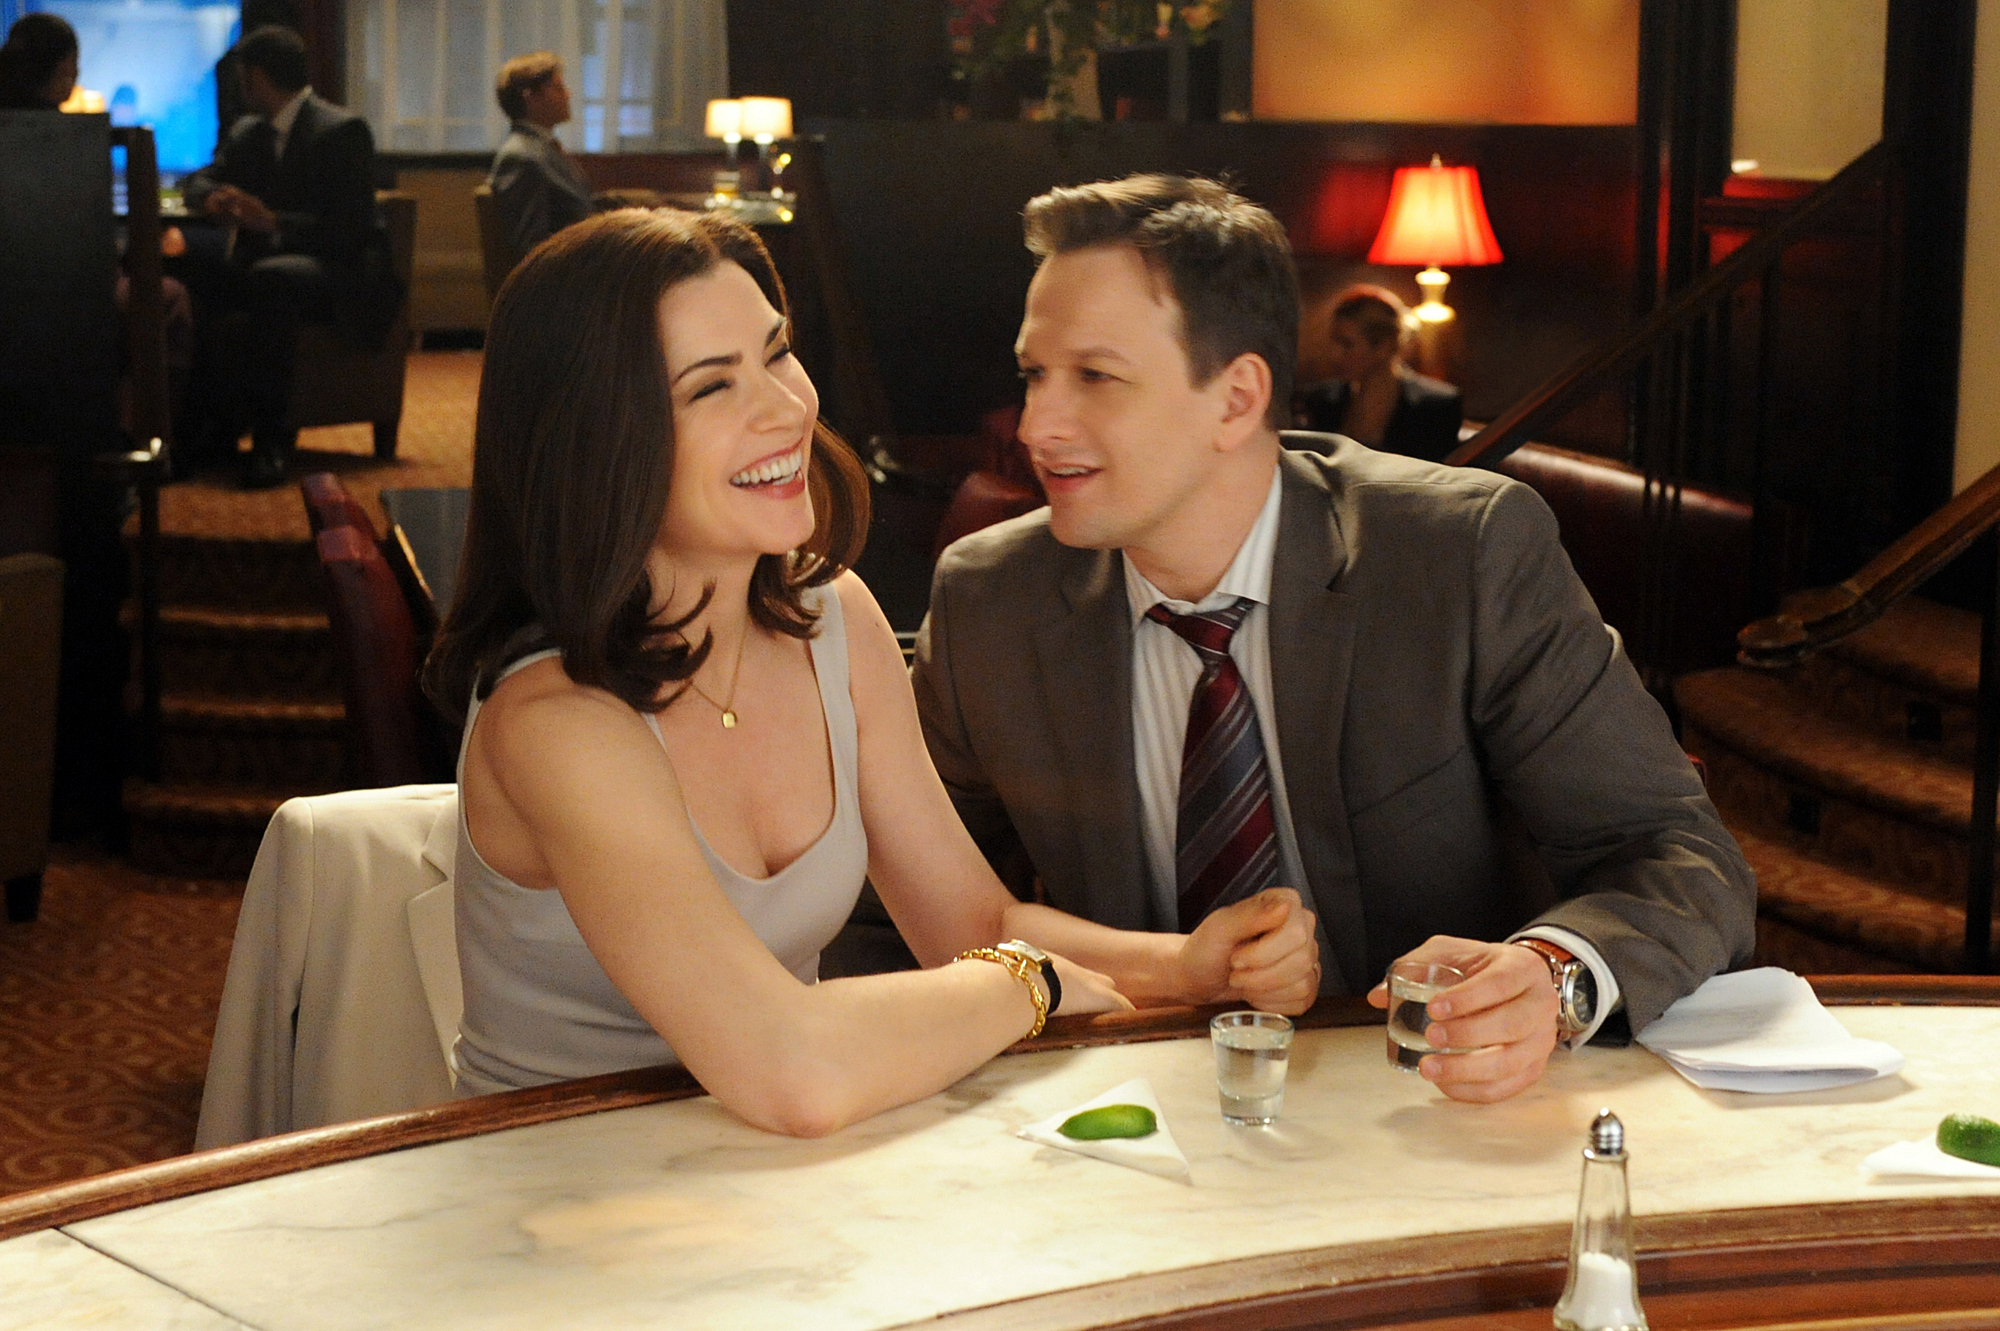 Alicia & Will, The Good Wife.